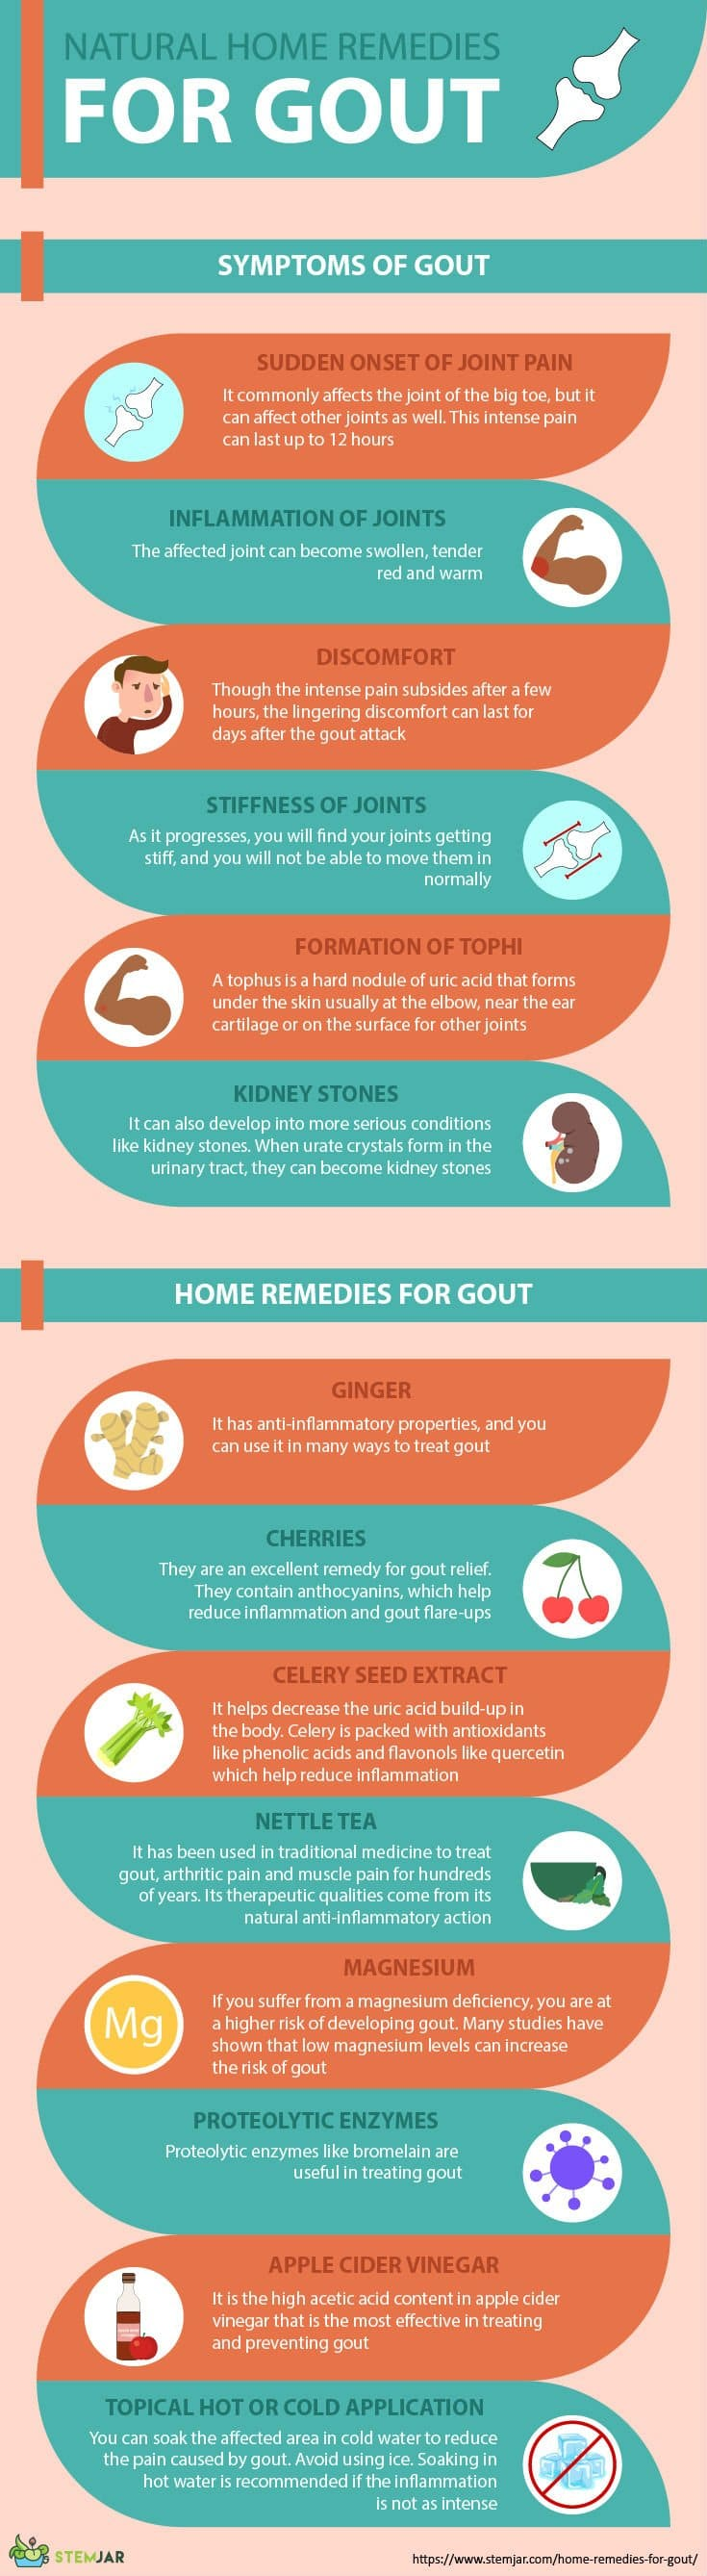 home remedies for gout infographic